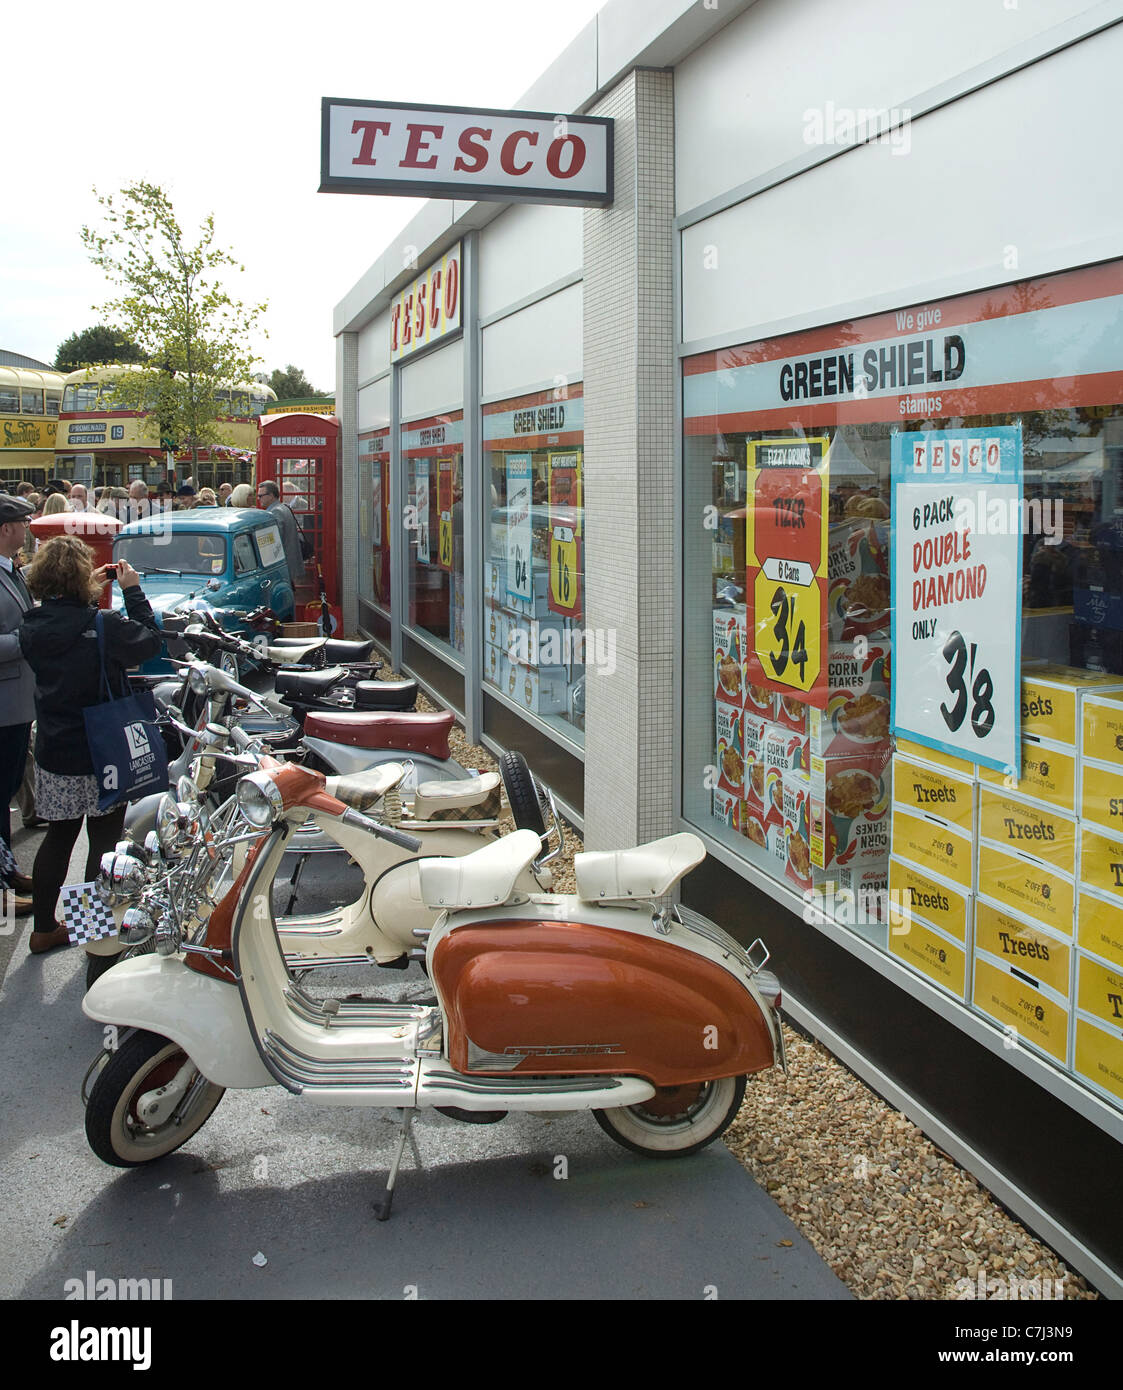 Tesco retro supermarket with scooters at 2011 Goodwood Revival - Stock Image